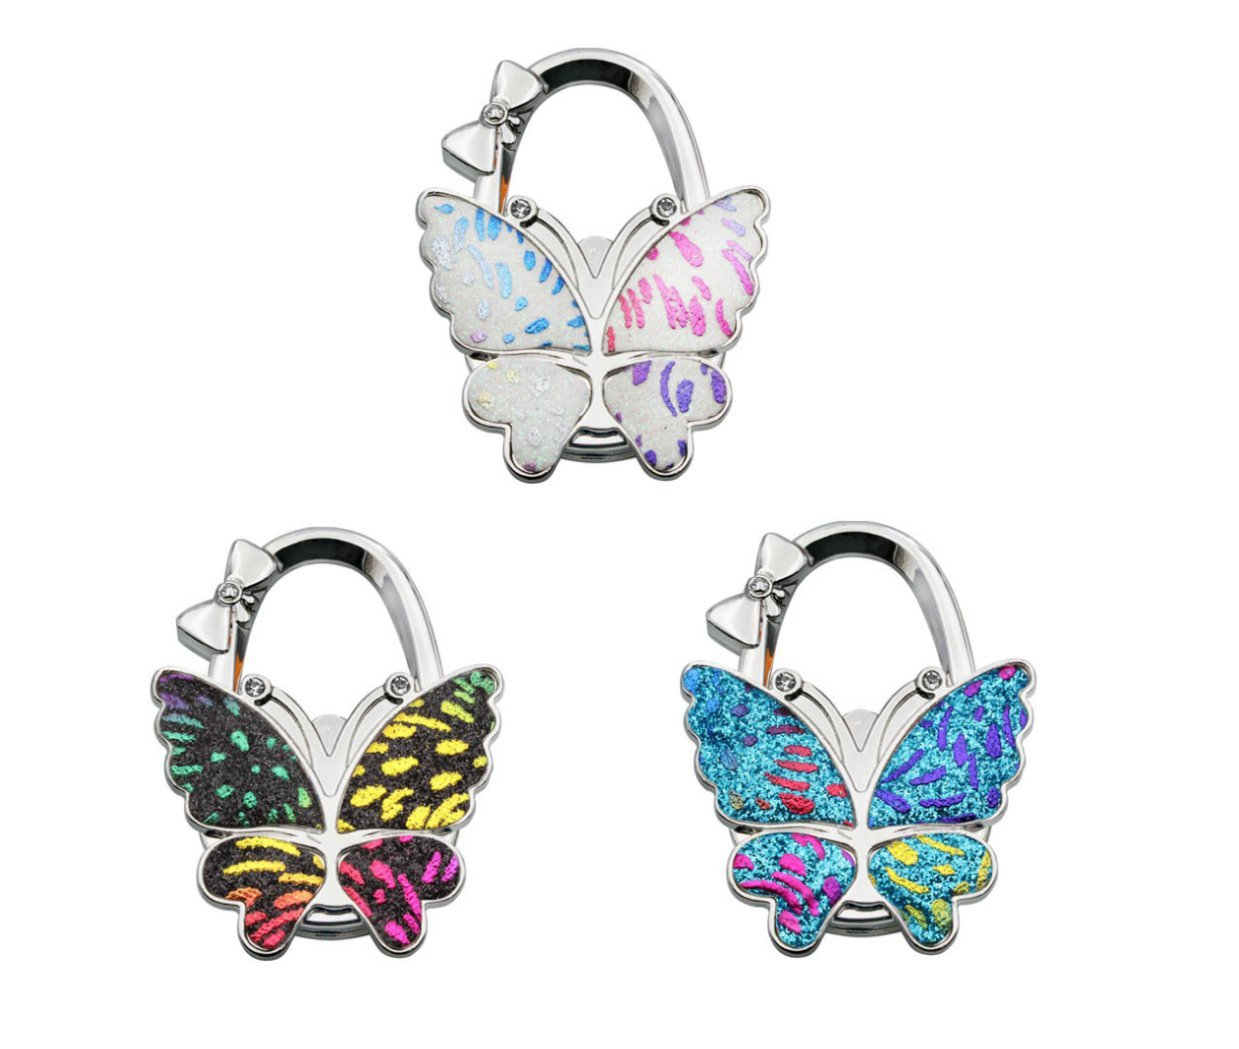 3PC Butterfly Purse Handbag Hook Folding Hanger for Women Gift Foldable Shoulder/Handbag/Backpack Purse Hangers Table Chair Holder Hook